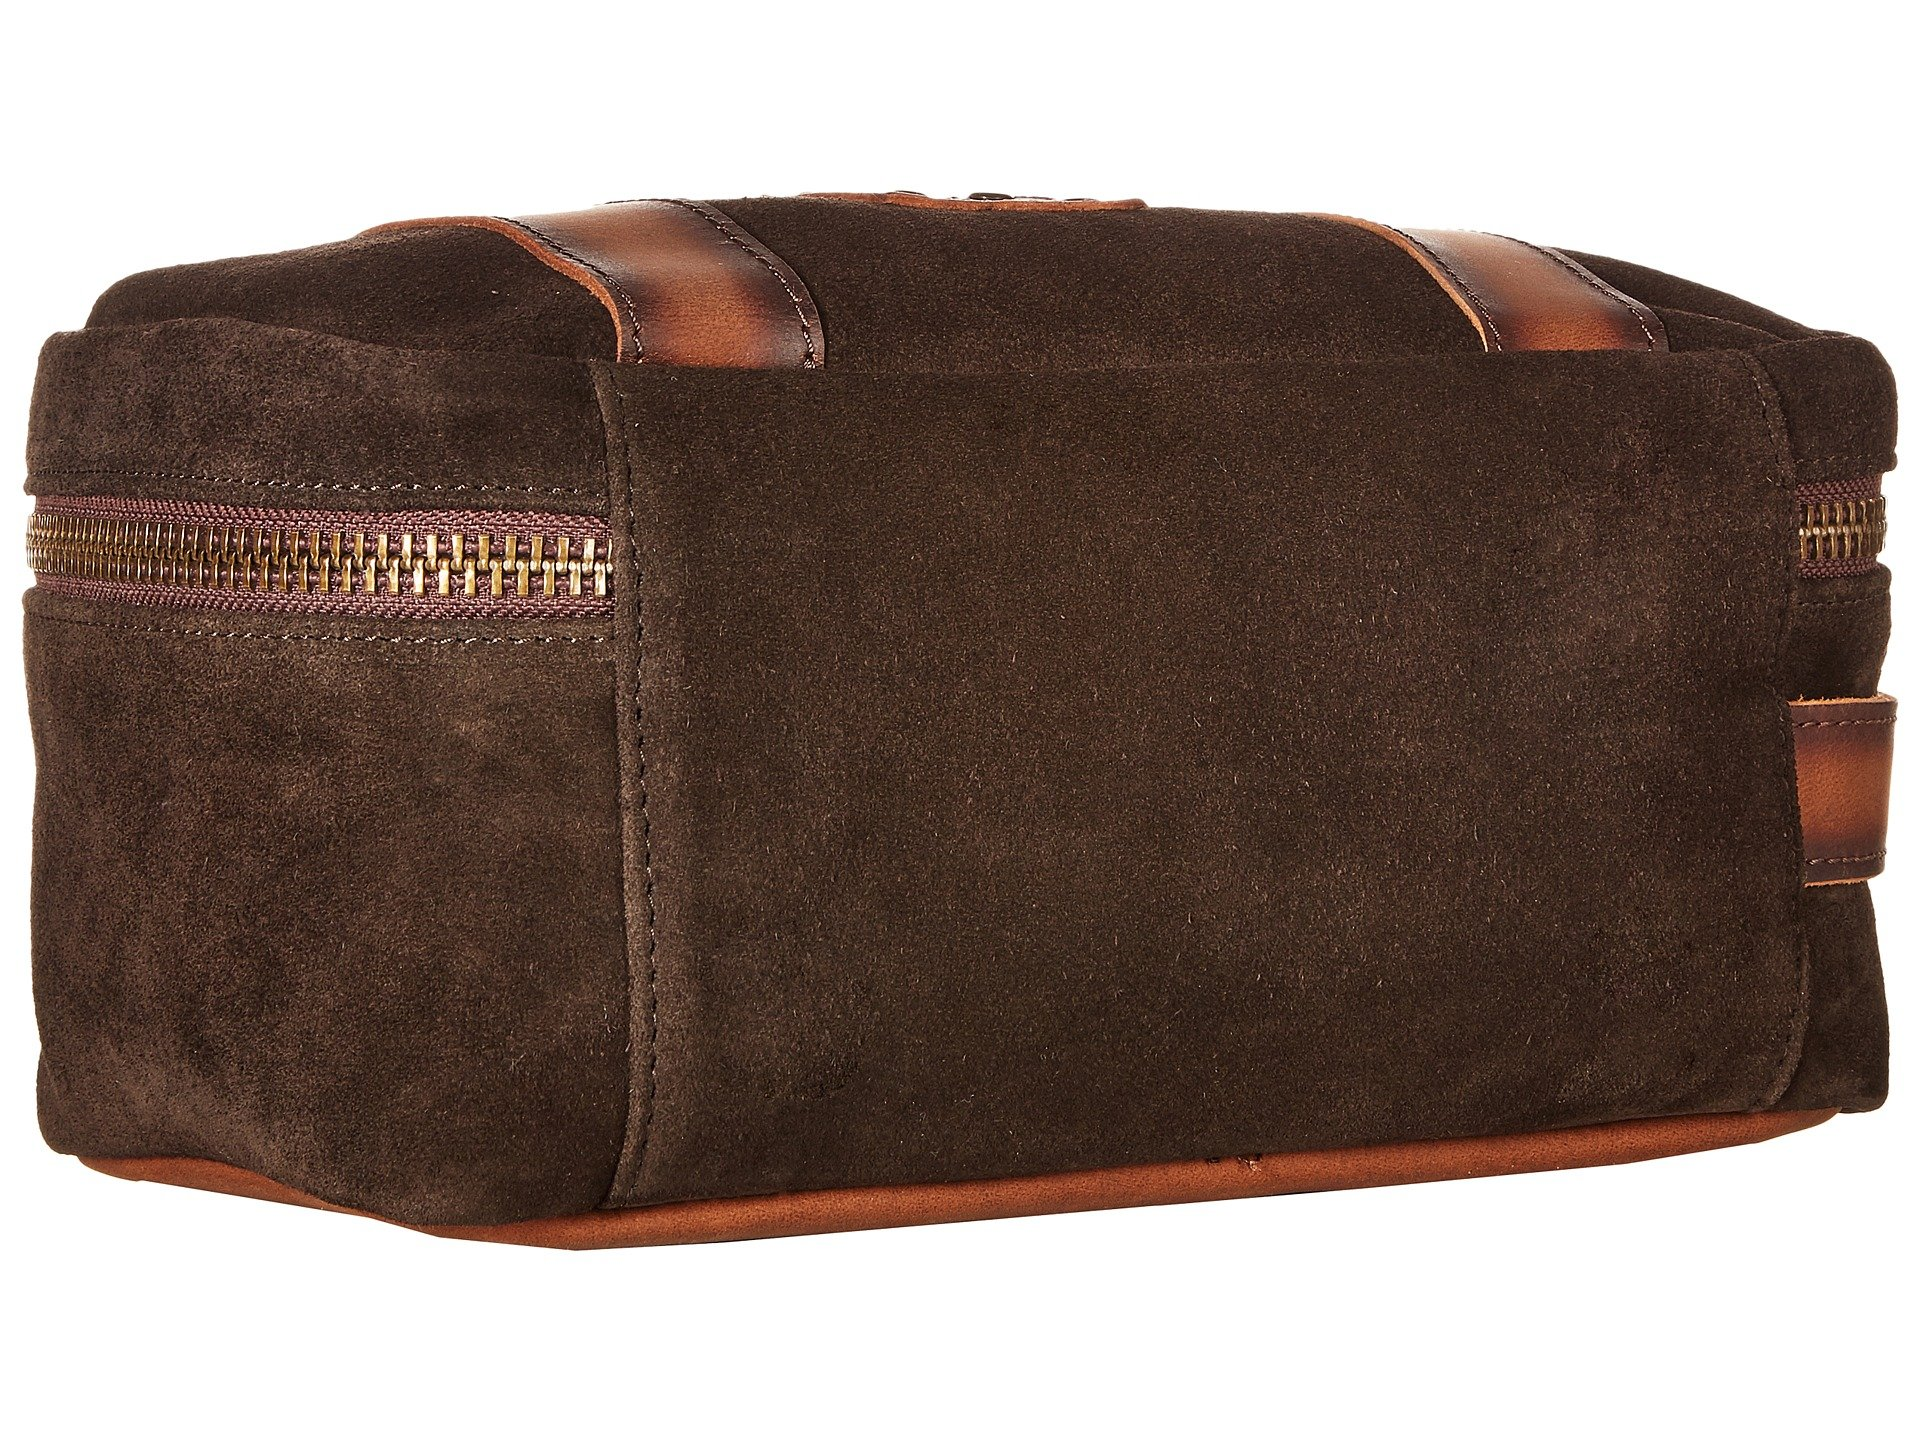 tornado Sts Kit Chocolate Suede Shave Heritage Ranchwear Brown wwqUBz1